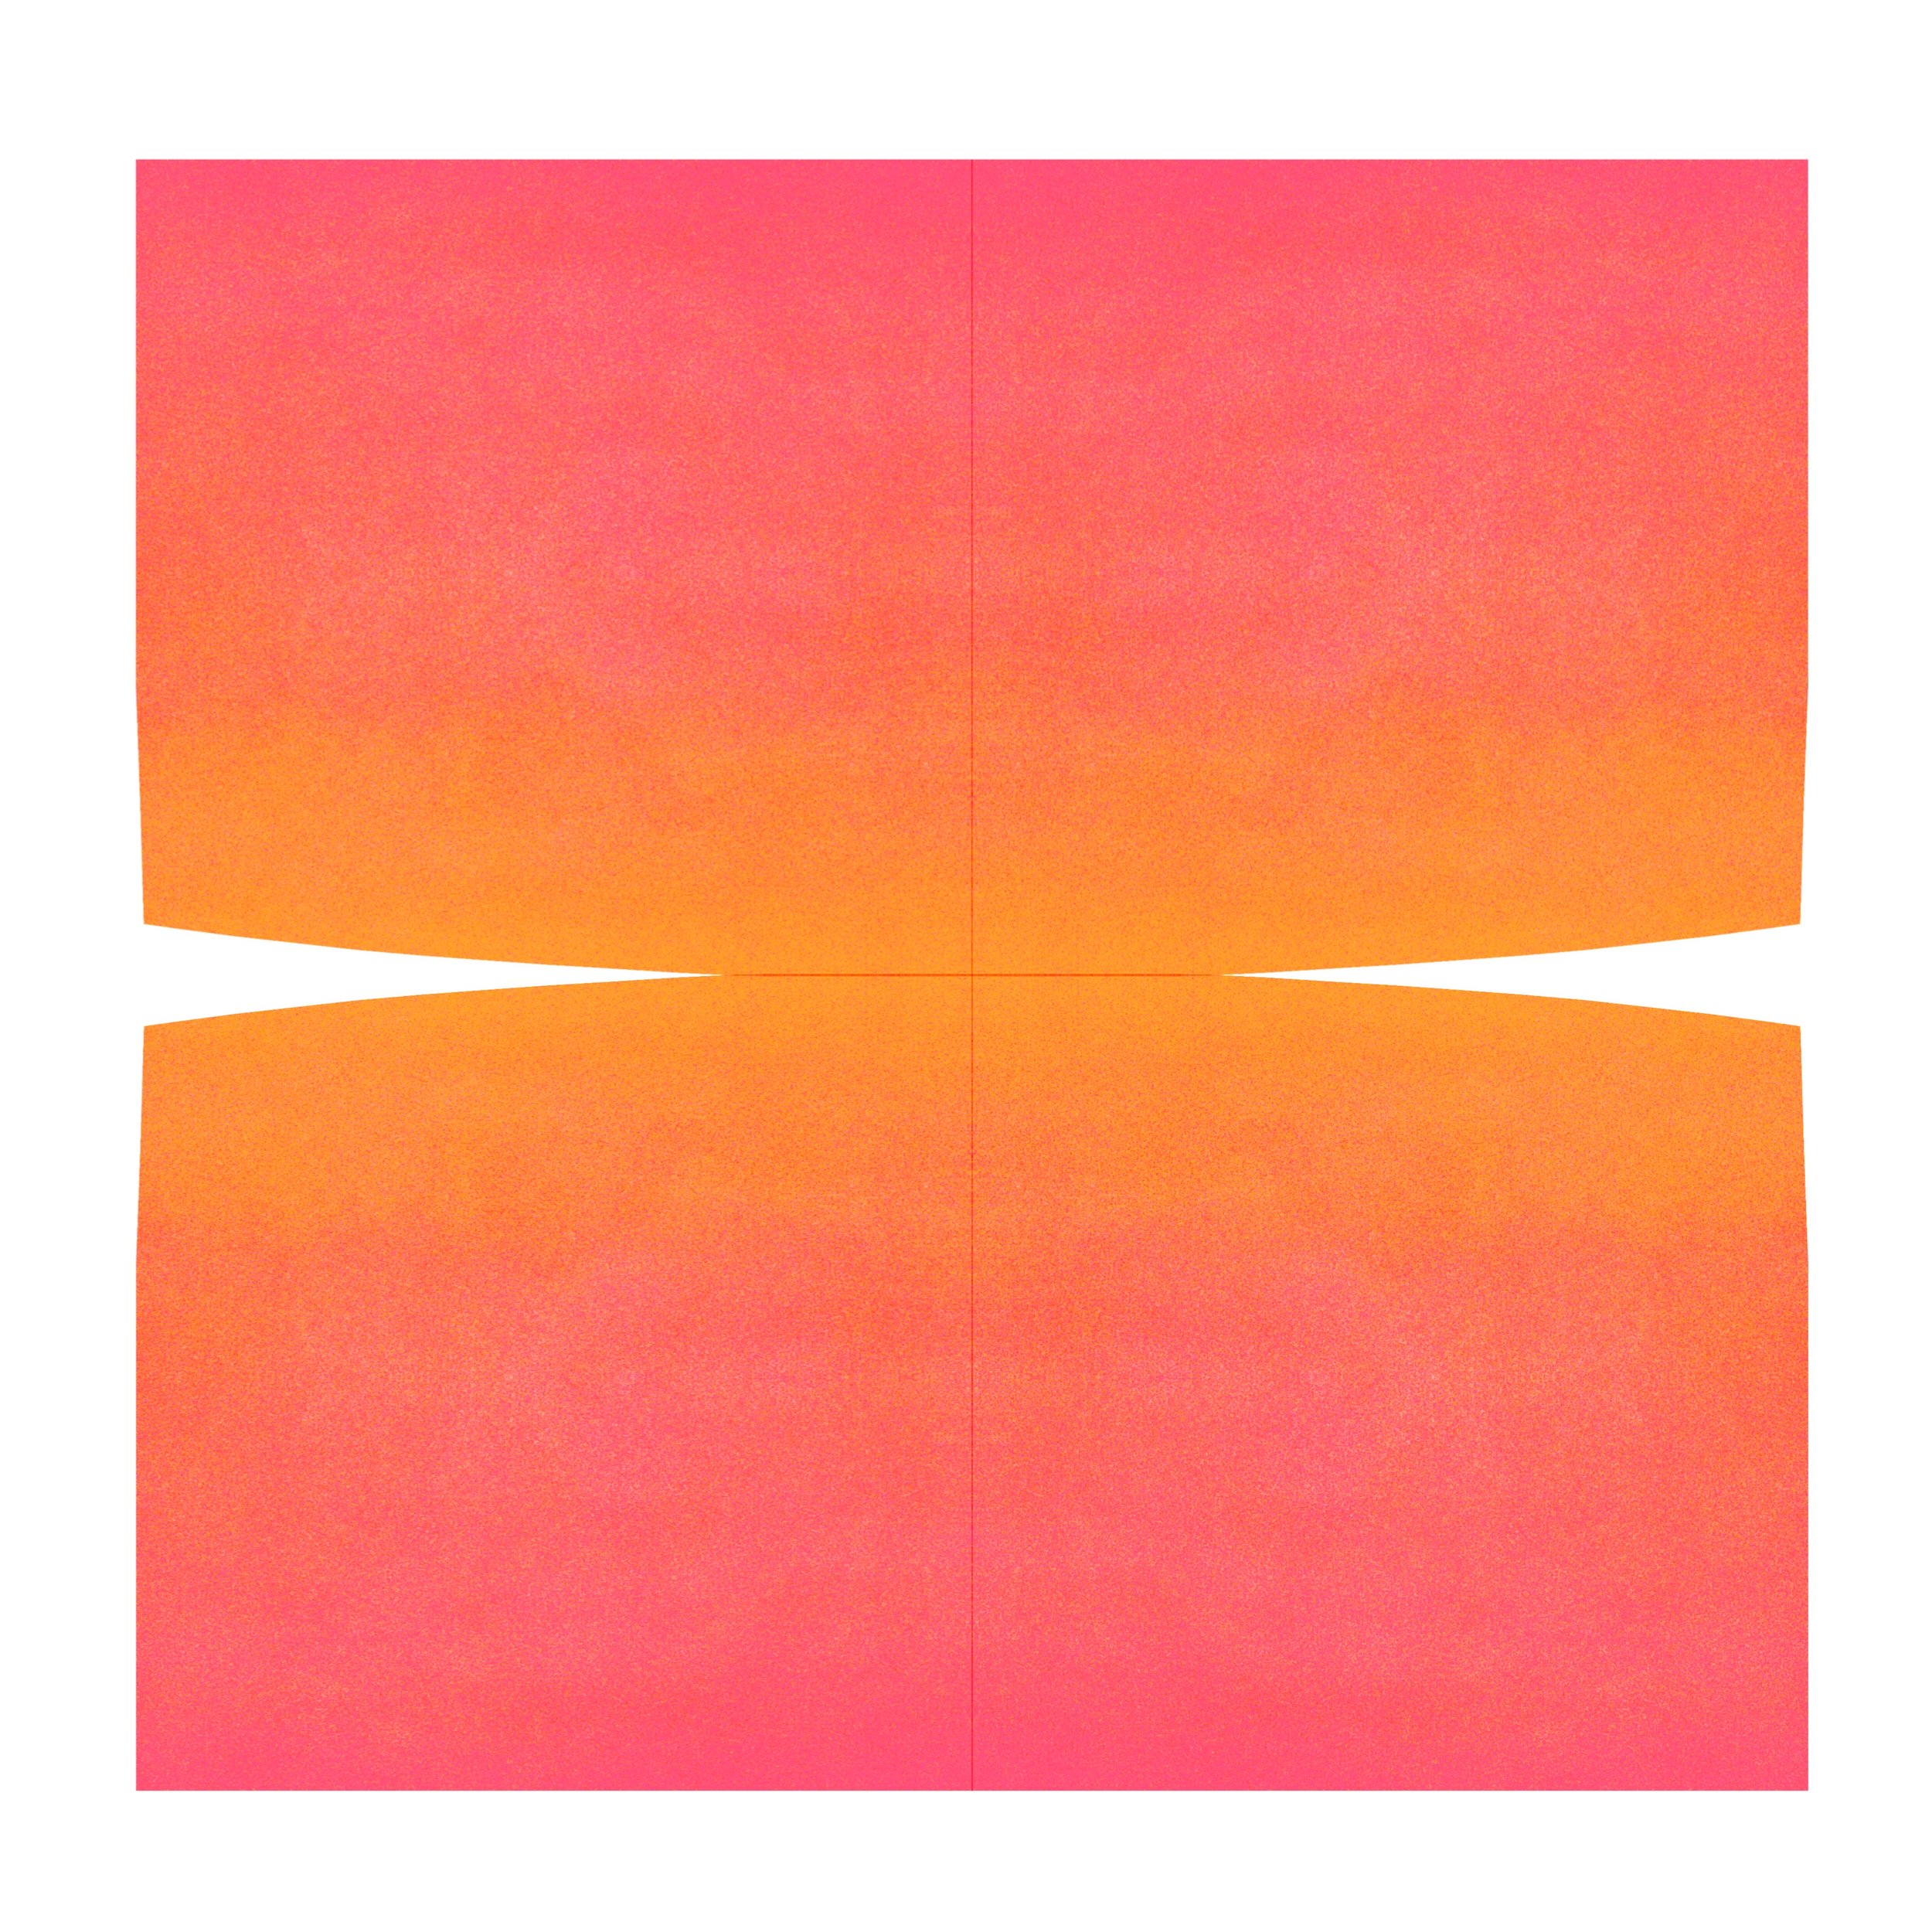 Color Space 2: Orange and Hot Pink